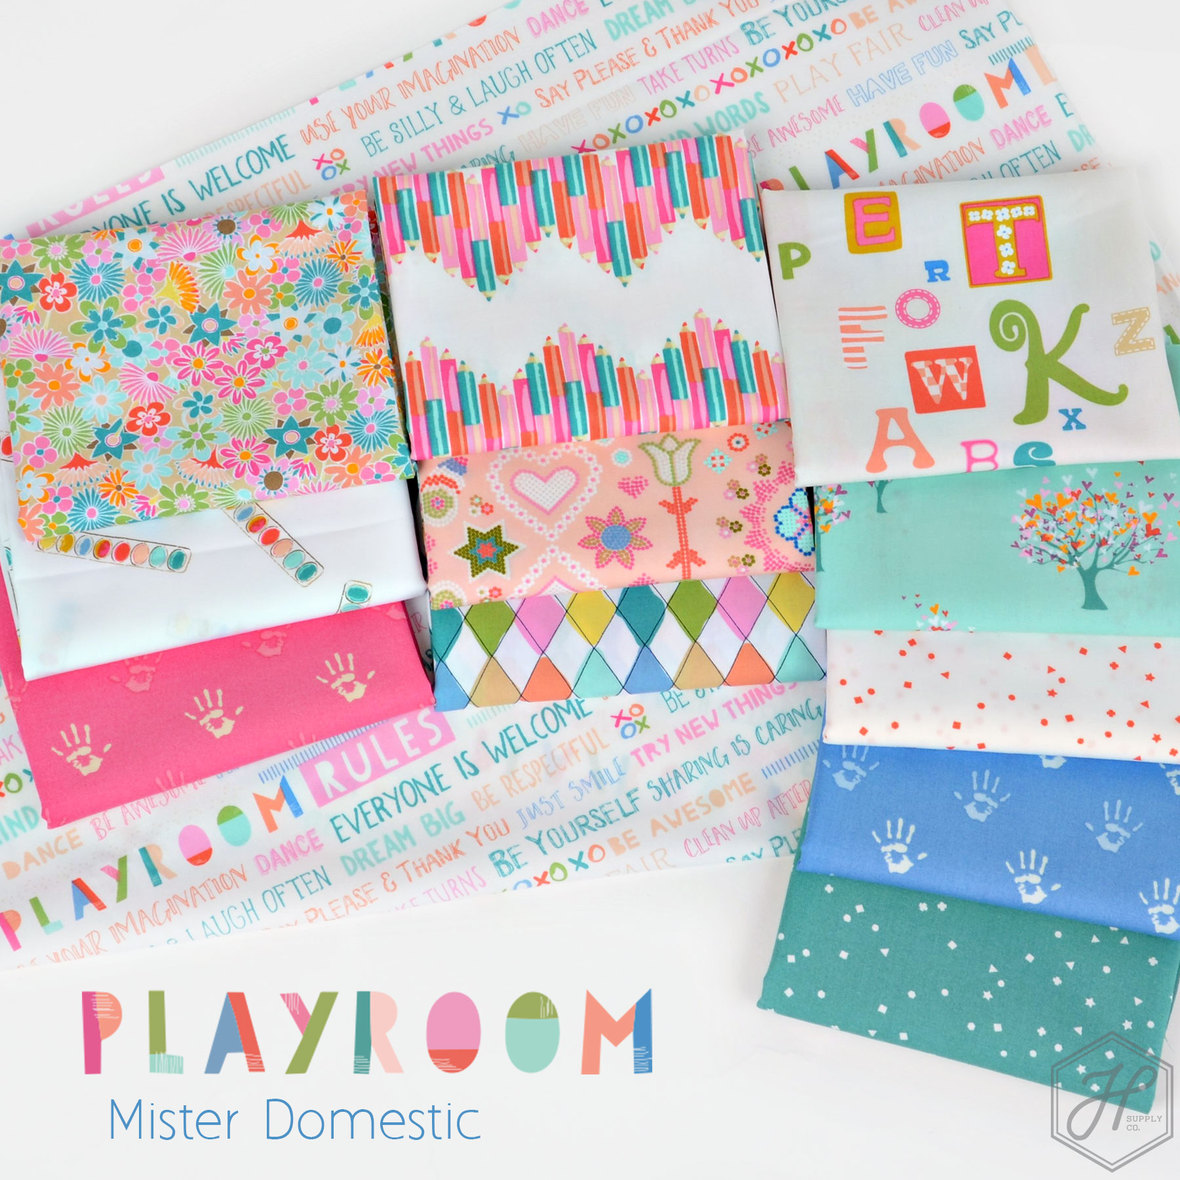 Playroom-Fabric-Poster-Mister-Domestic-for-Art-Gallery-at-Hawthorne-Supply-Co